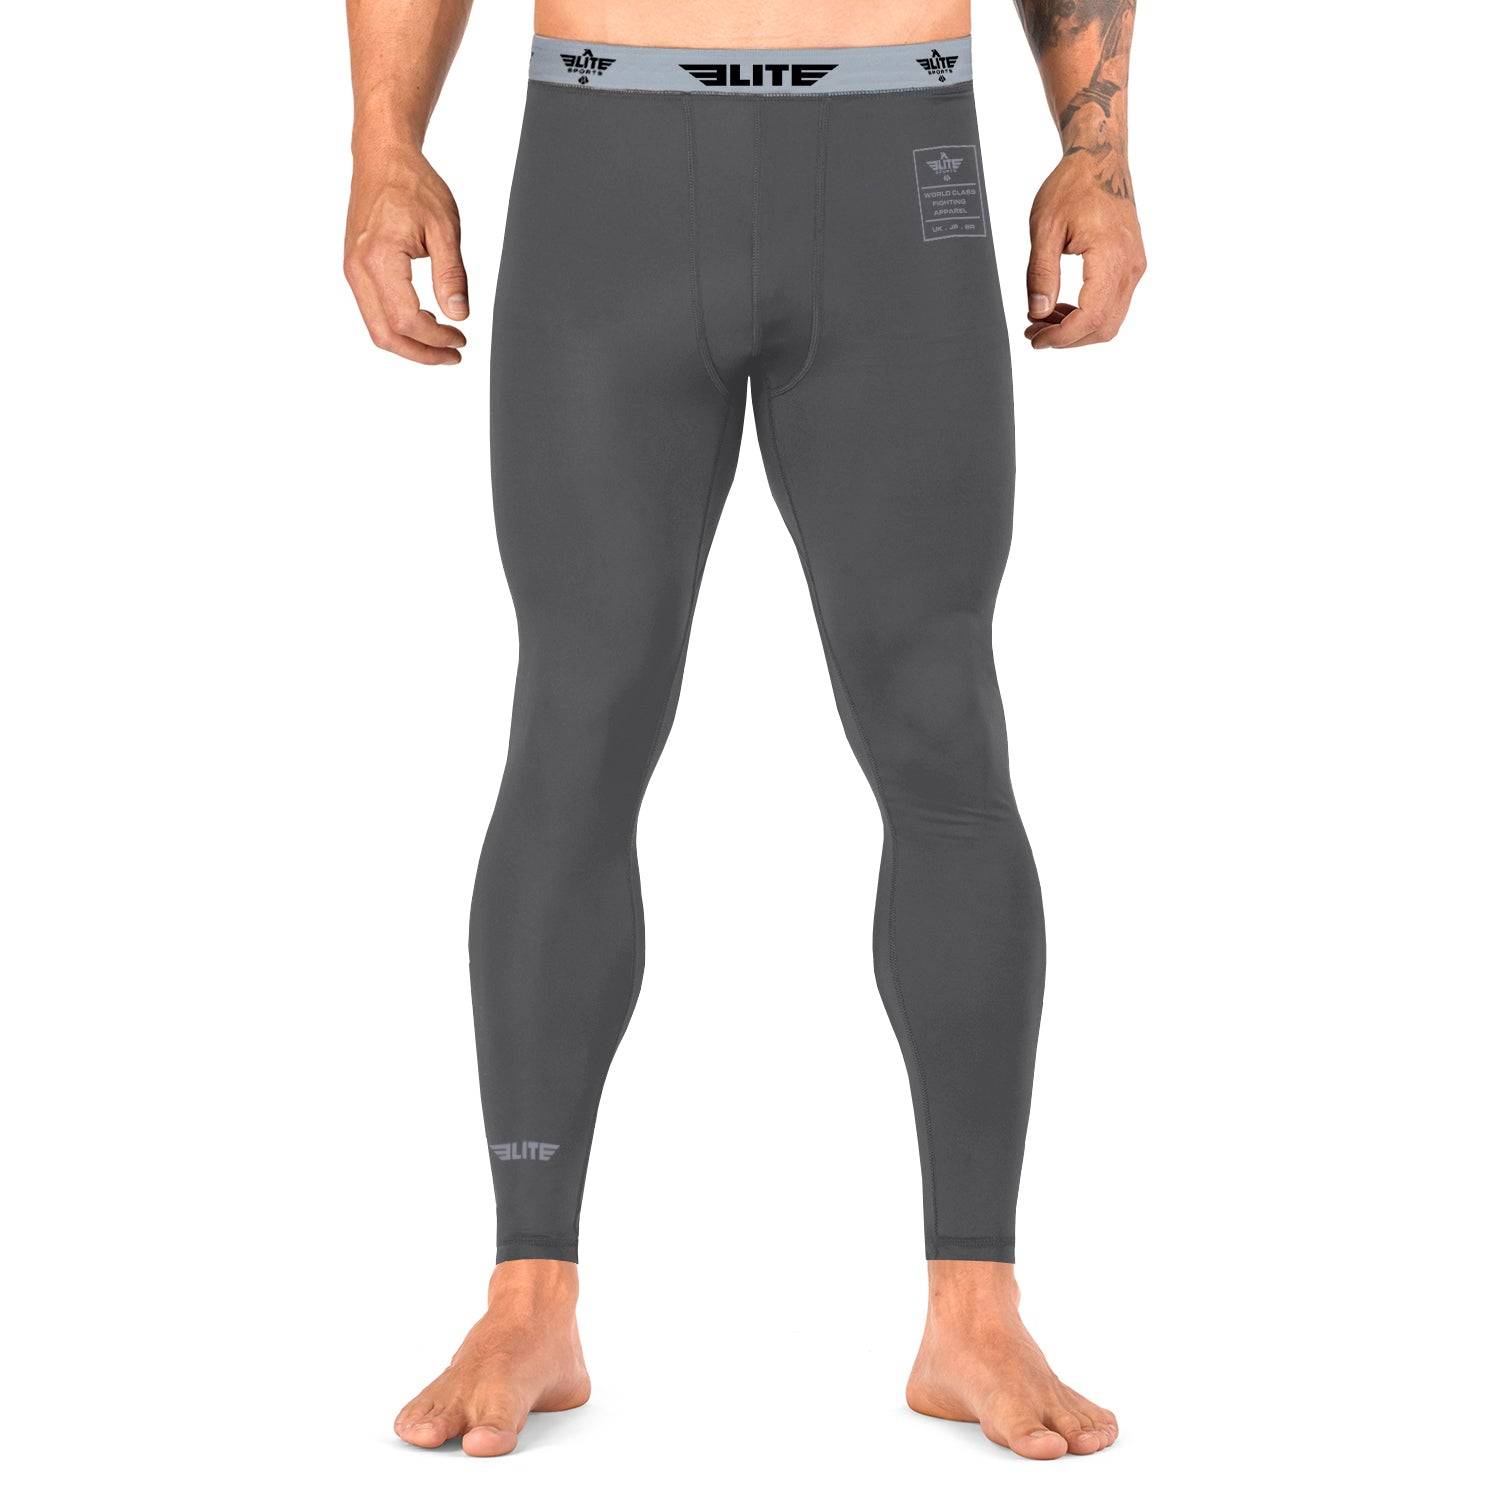 Elite Sports Plain Gray Compression Brazilian Jiu Jitsu BJJ Spat Pants